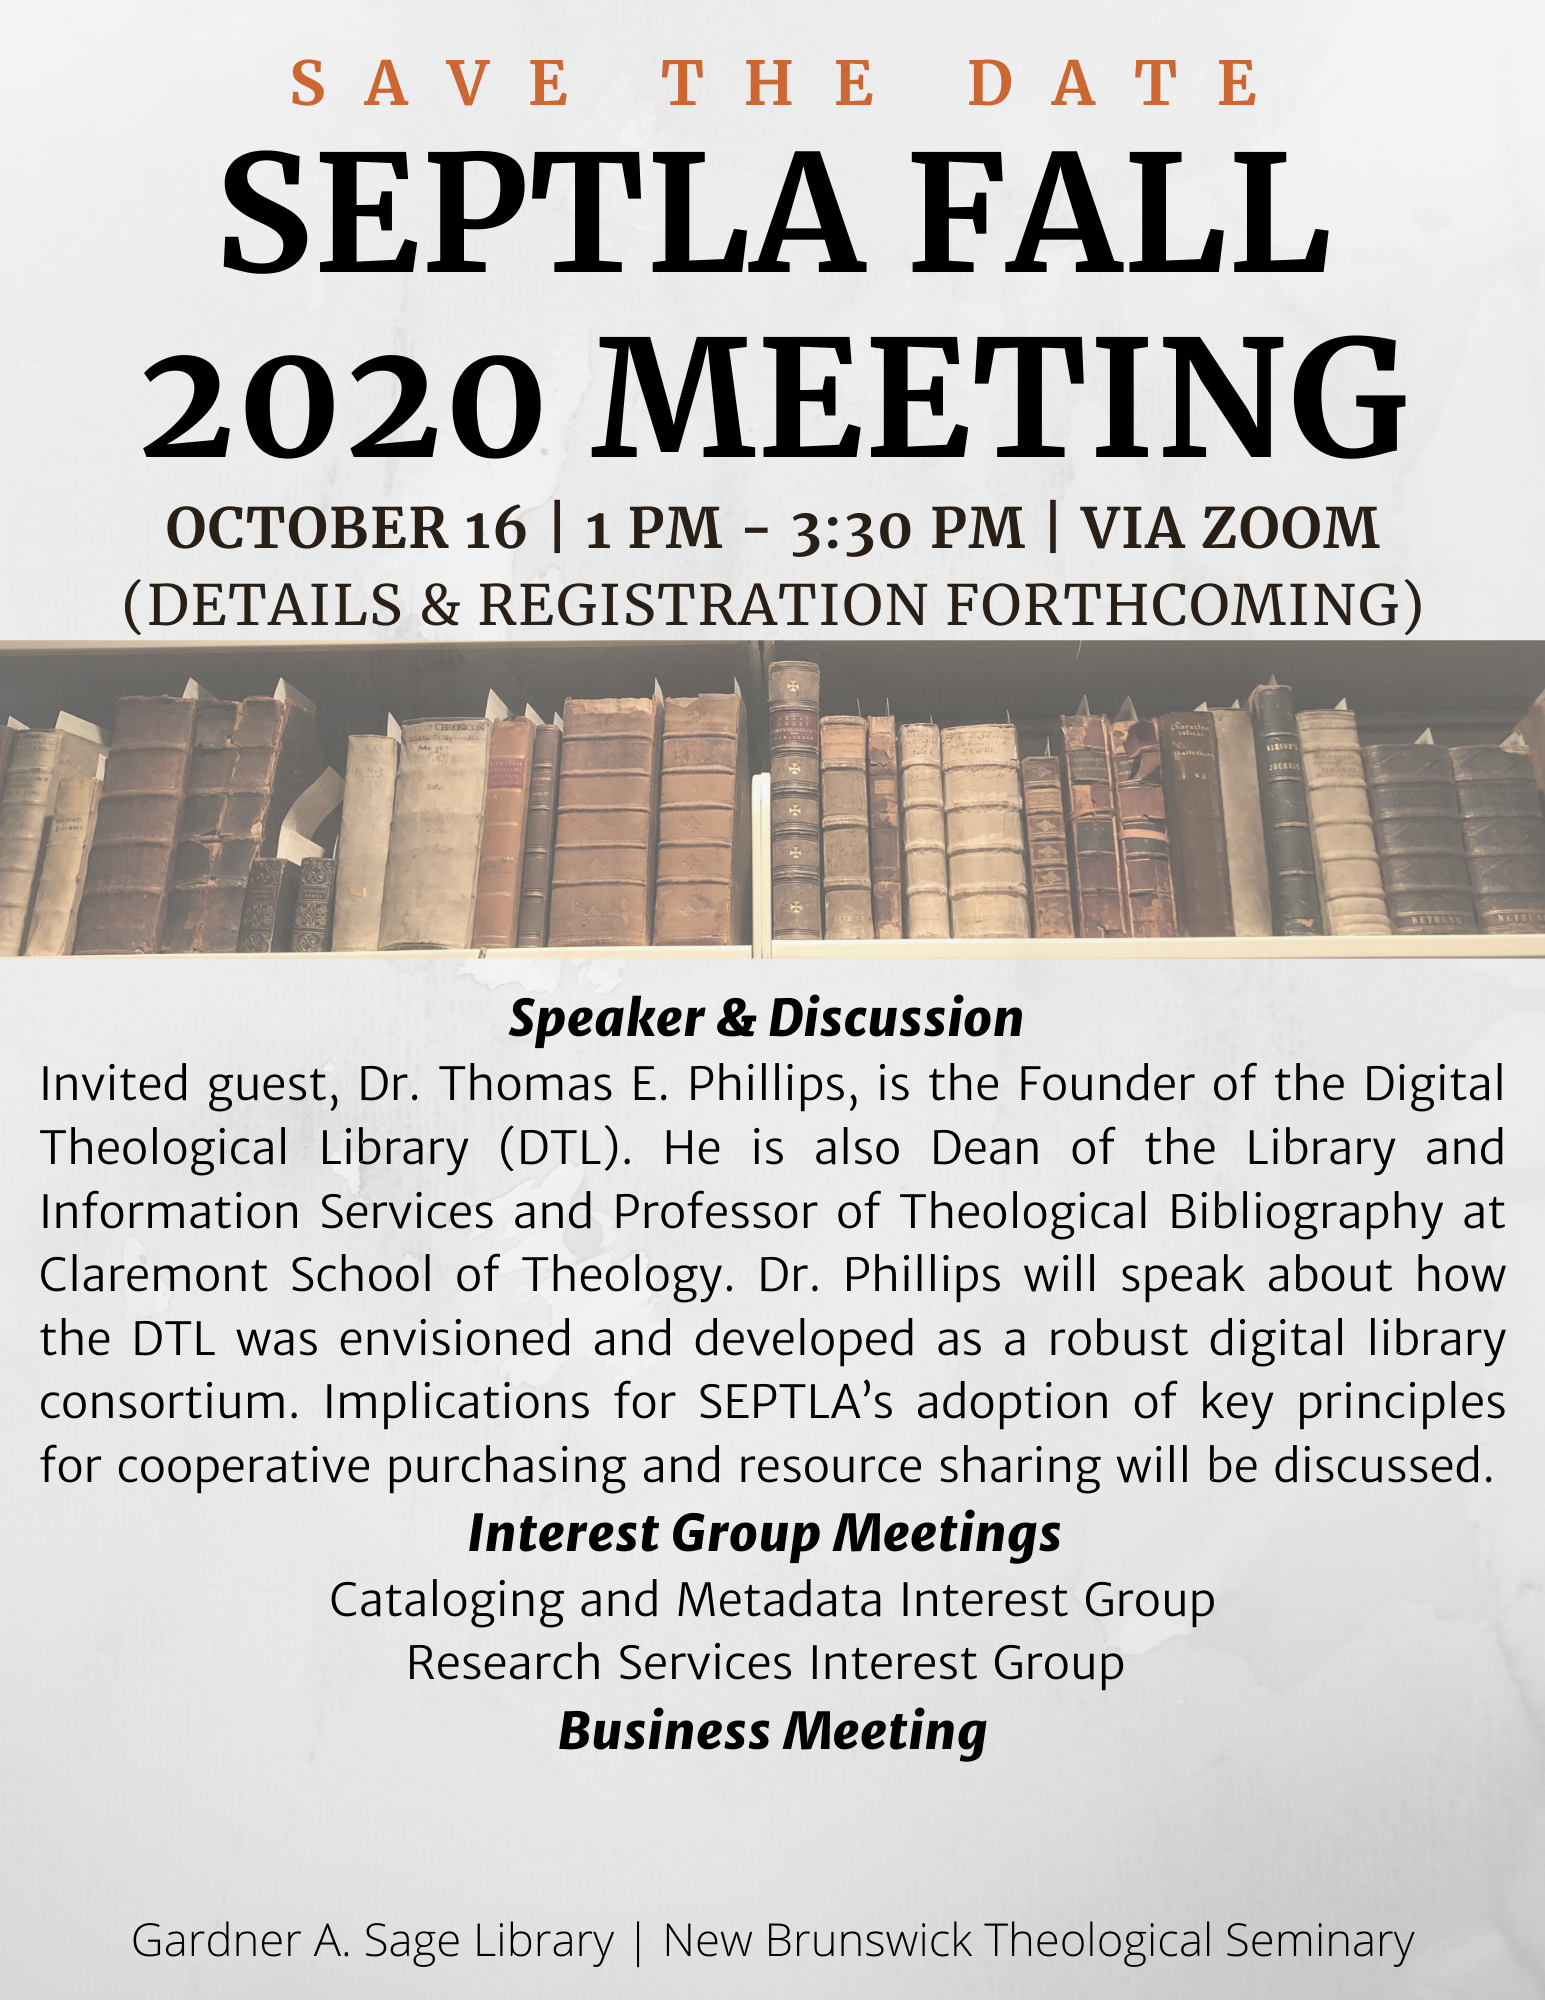 SEPTLA Fall Meeting 2020 Invitation